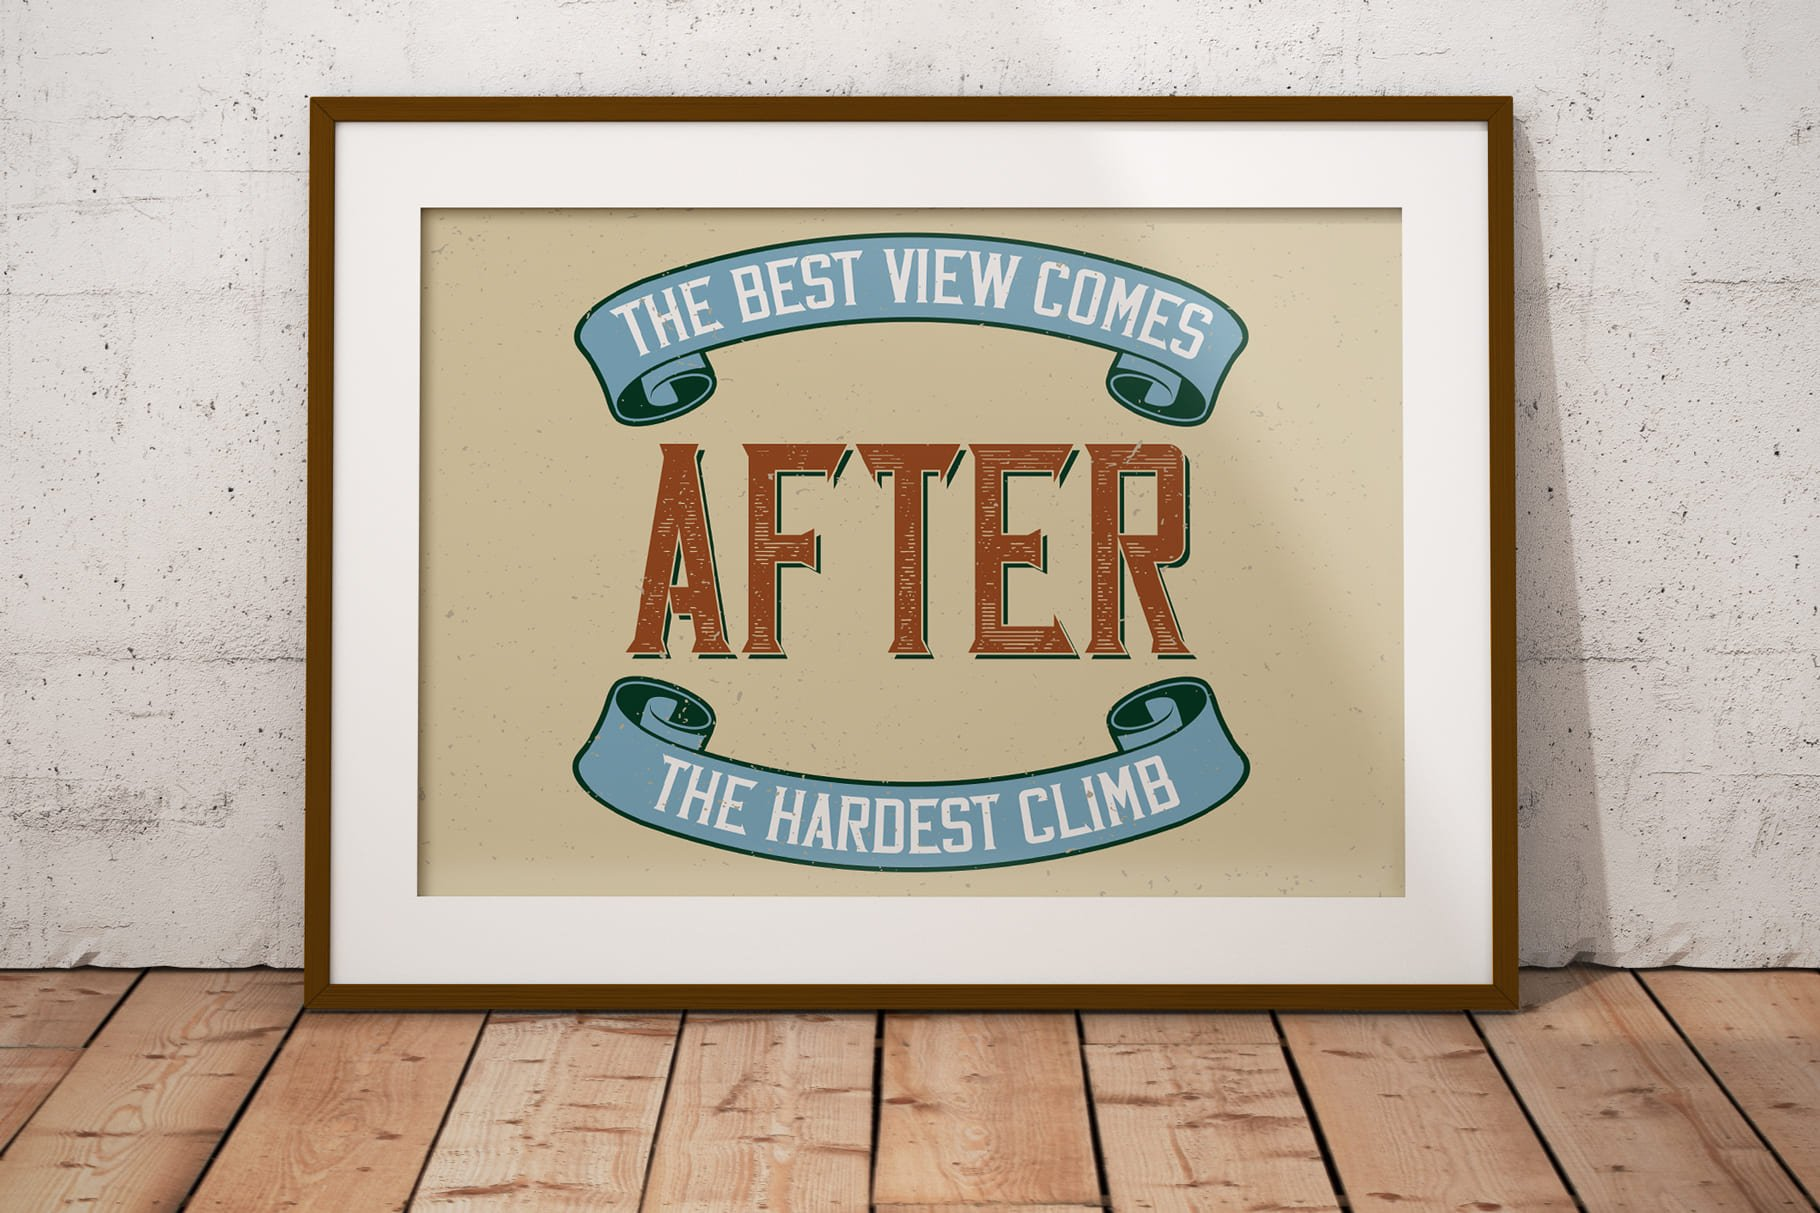 Stylish poster with vintage font.